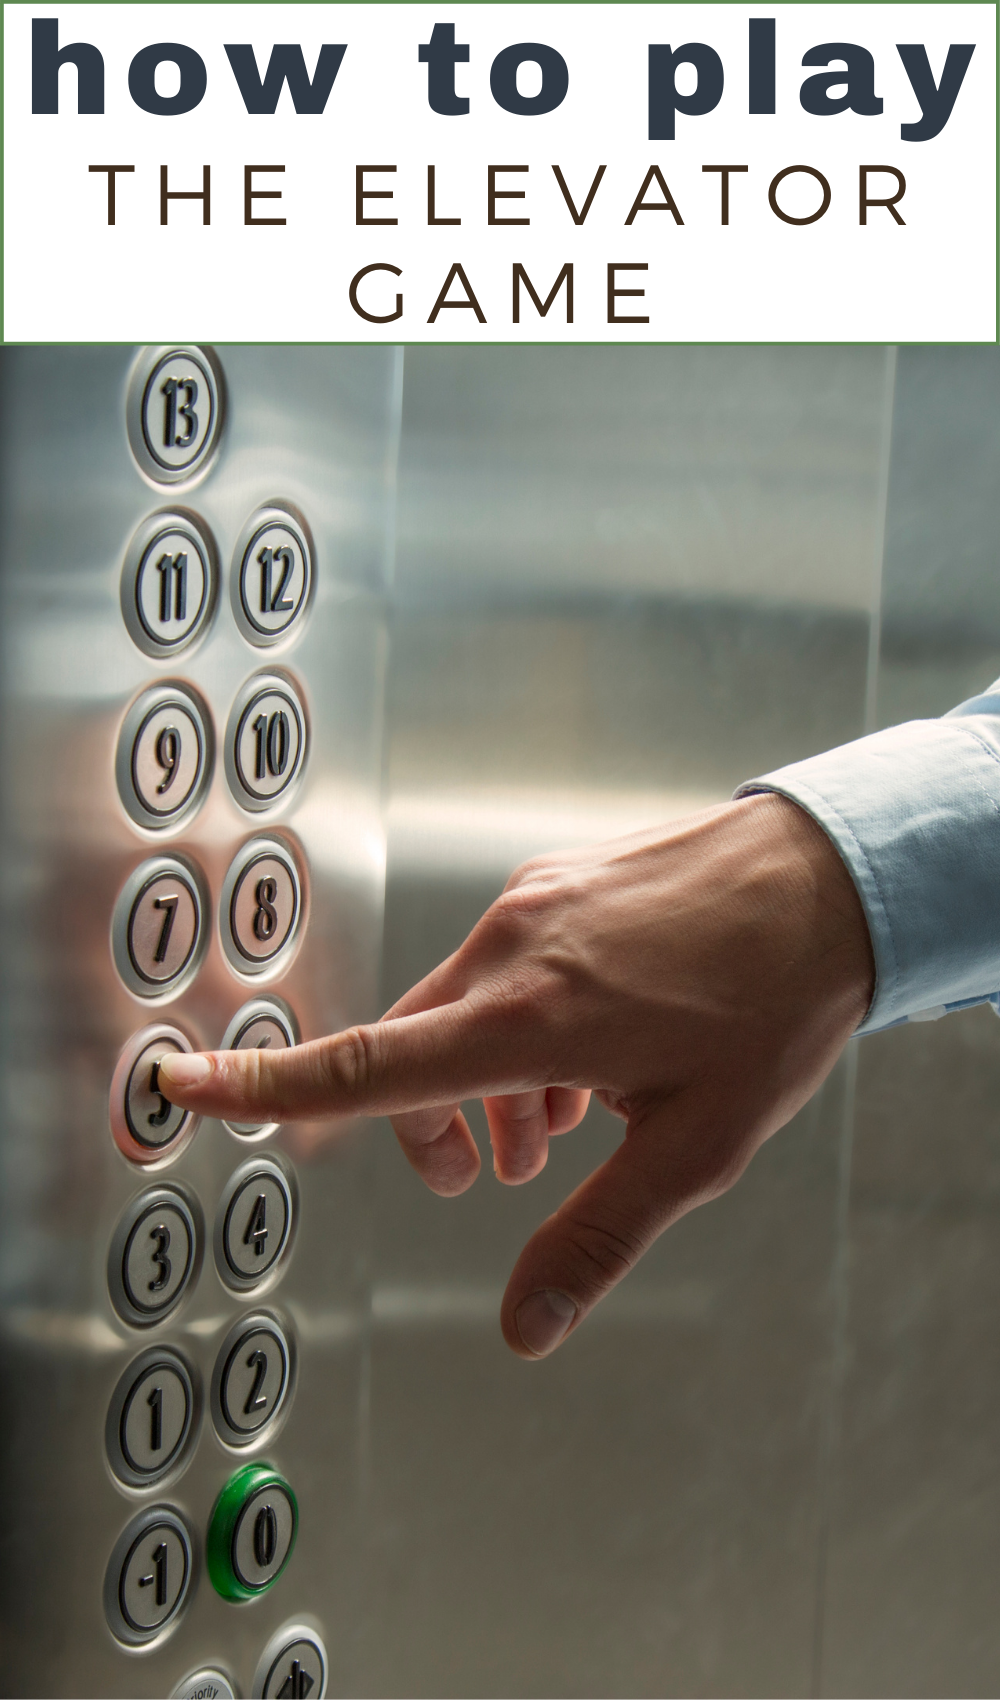 how to play the elevator game